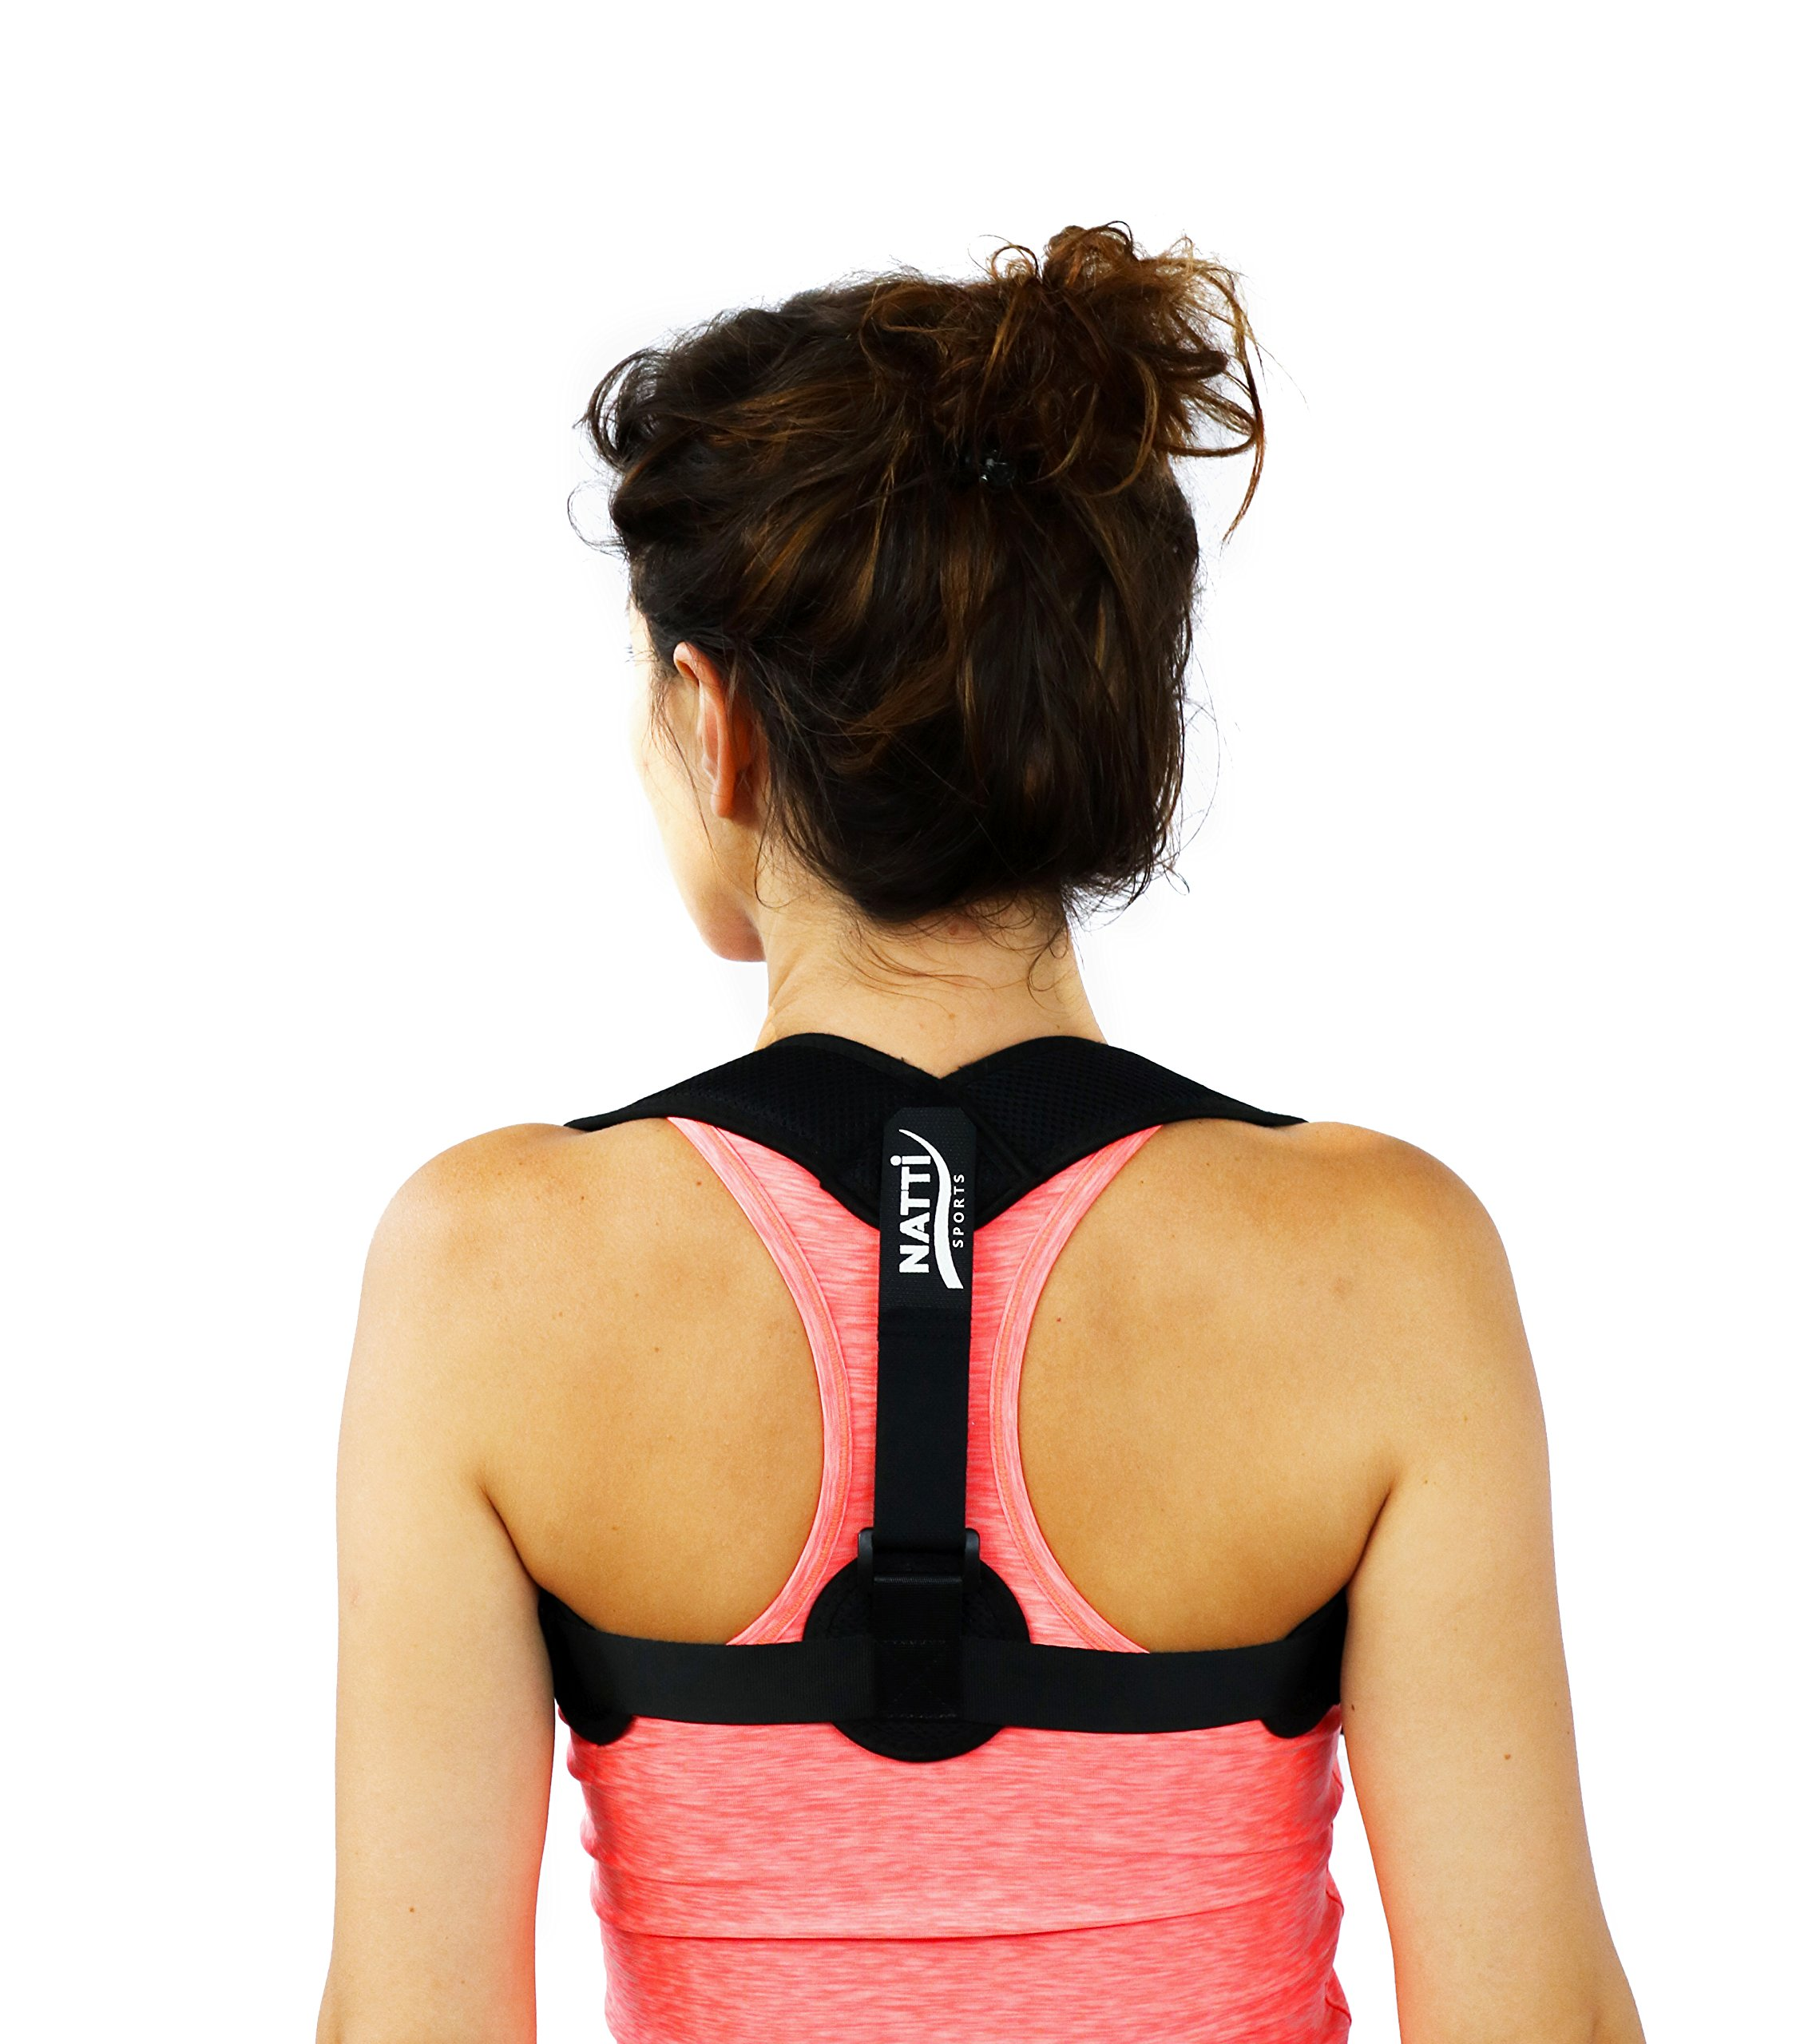 Posture Corrector for Men & Women + Armpit Pads | Breathable Adjustable Back Brace with Buckles | Invisible & Comfortable Under Clothing | Support Brace for Back Pain | Carry Bag by NATTI Sports